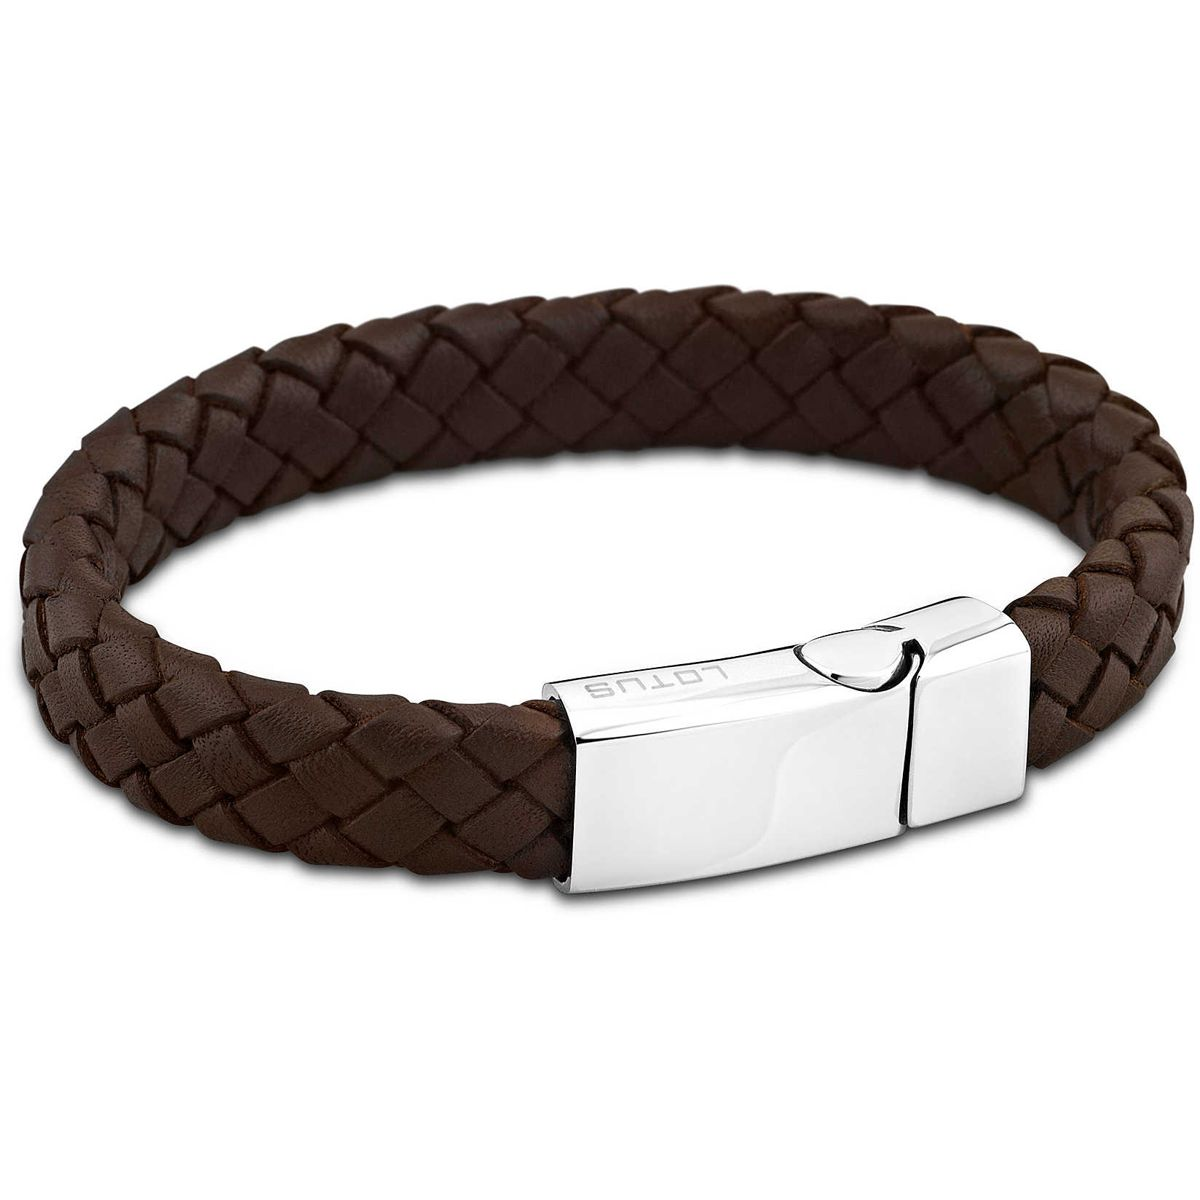 BROWN BRACELET MAN LS1380-2/1 Brown LOTUS Style